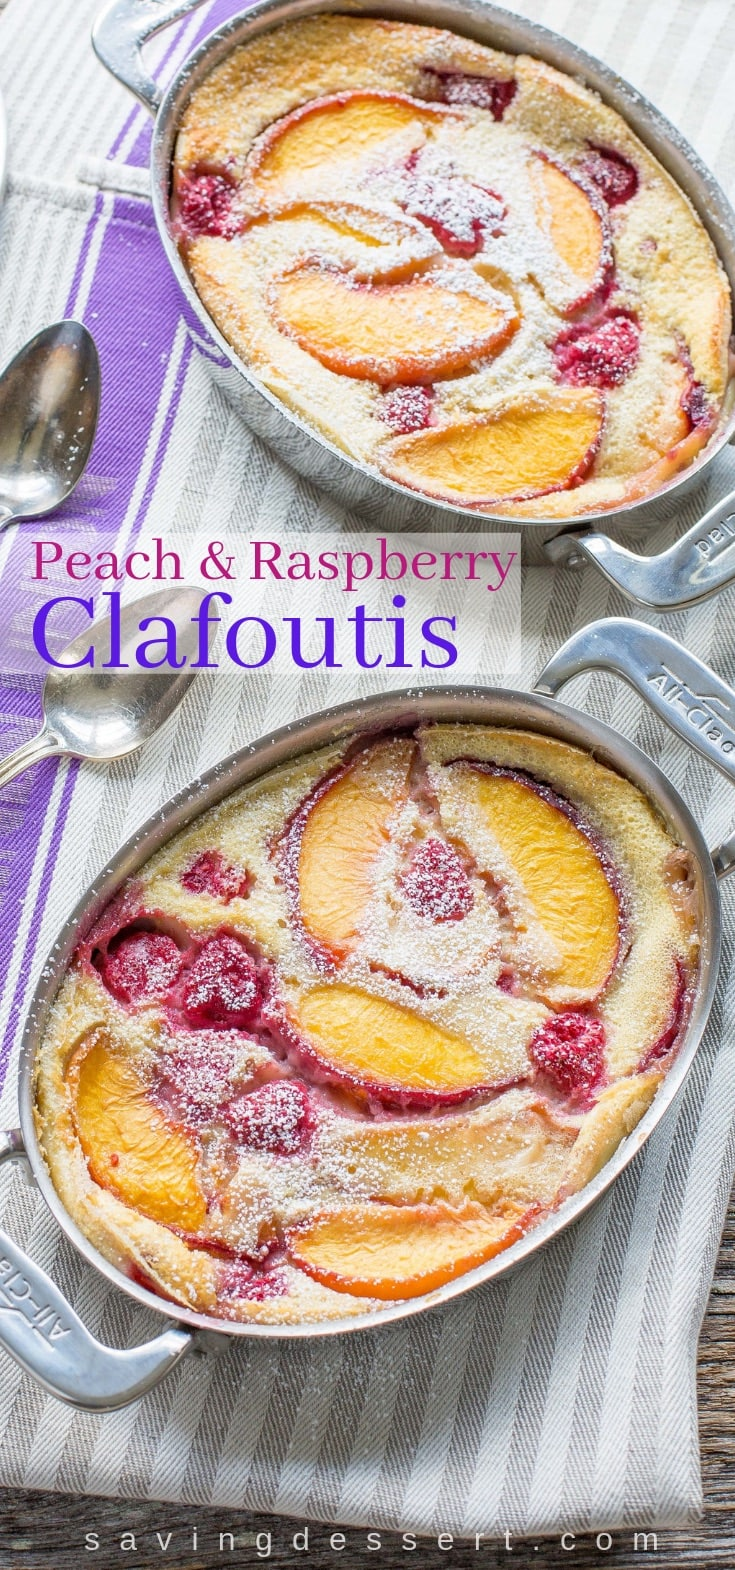 Two casserole dishes with a peach and raspberry custard dessert called a Clafoutis also dusted with powdered sugar